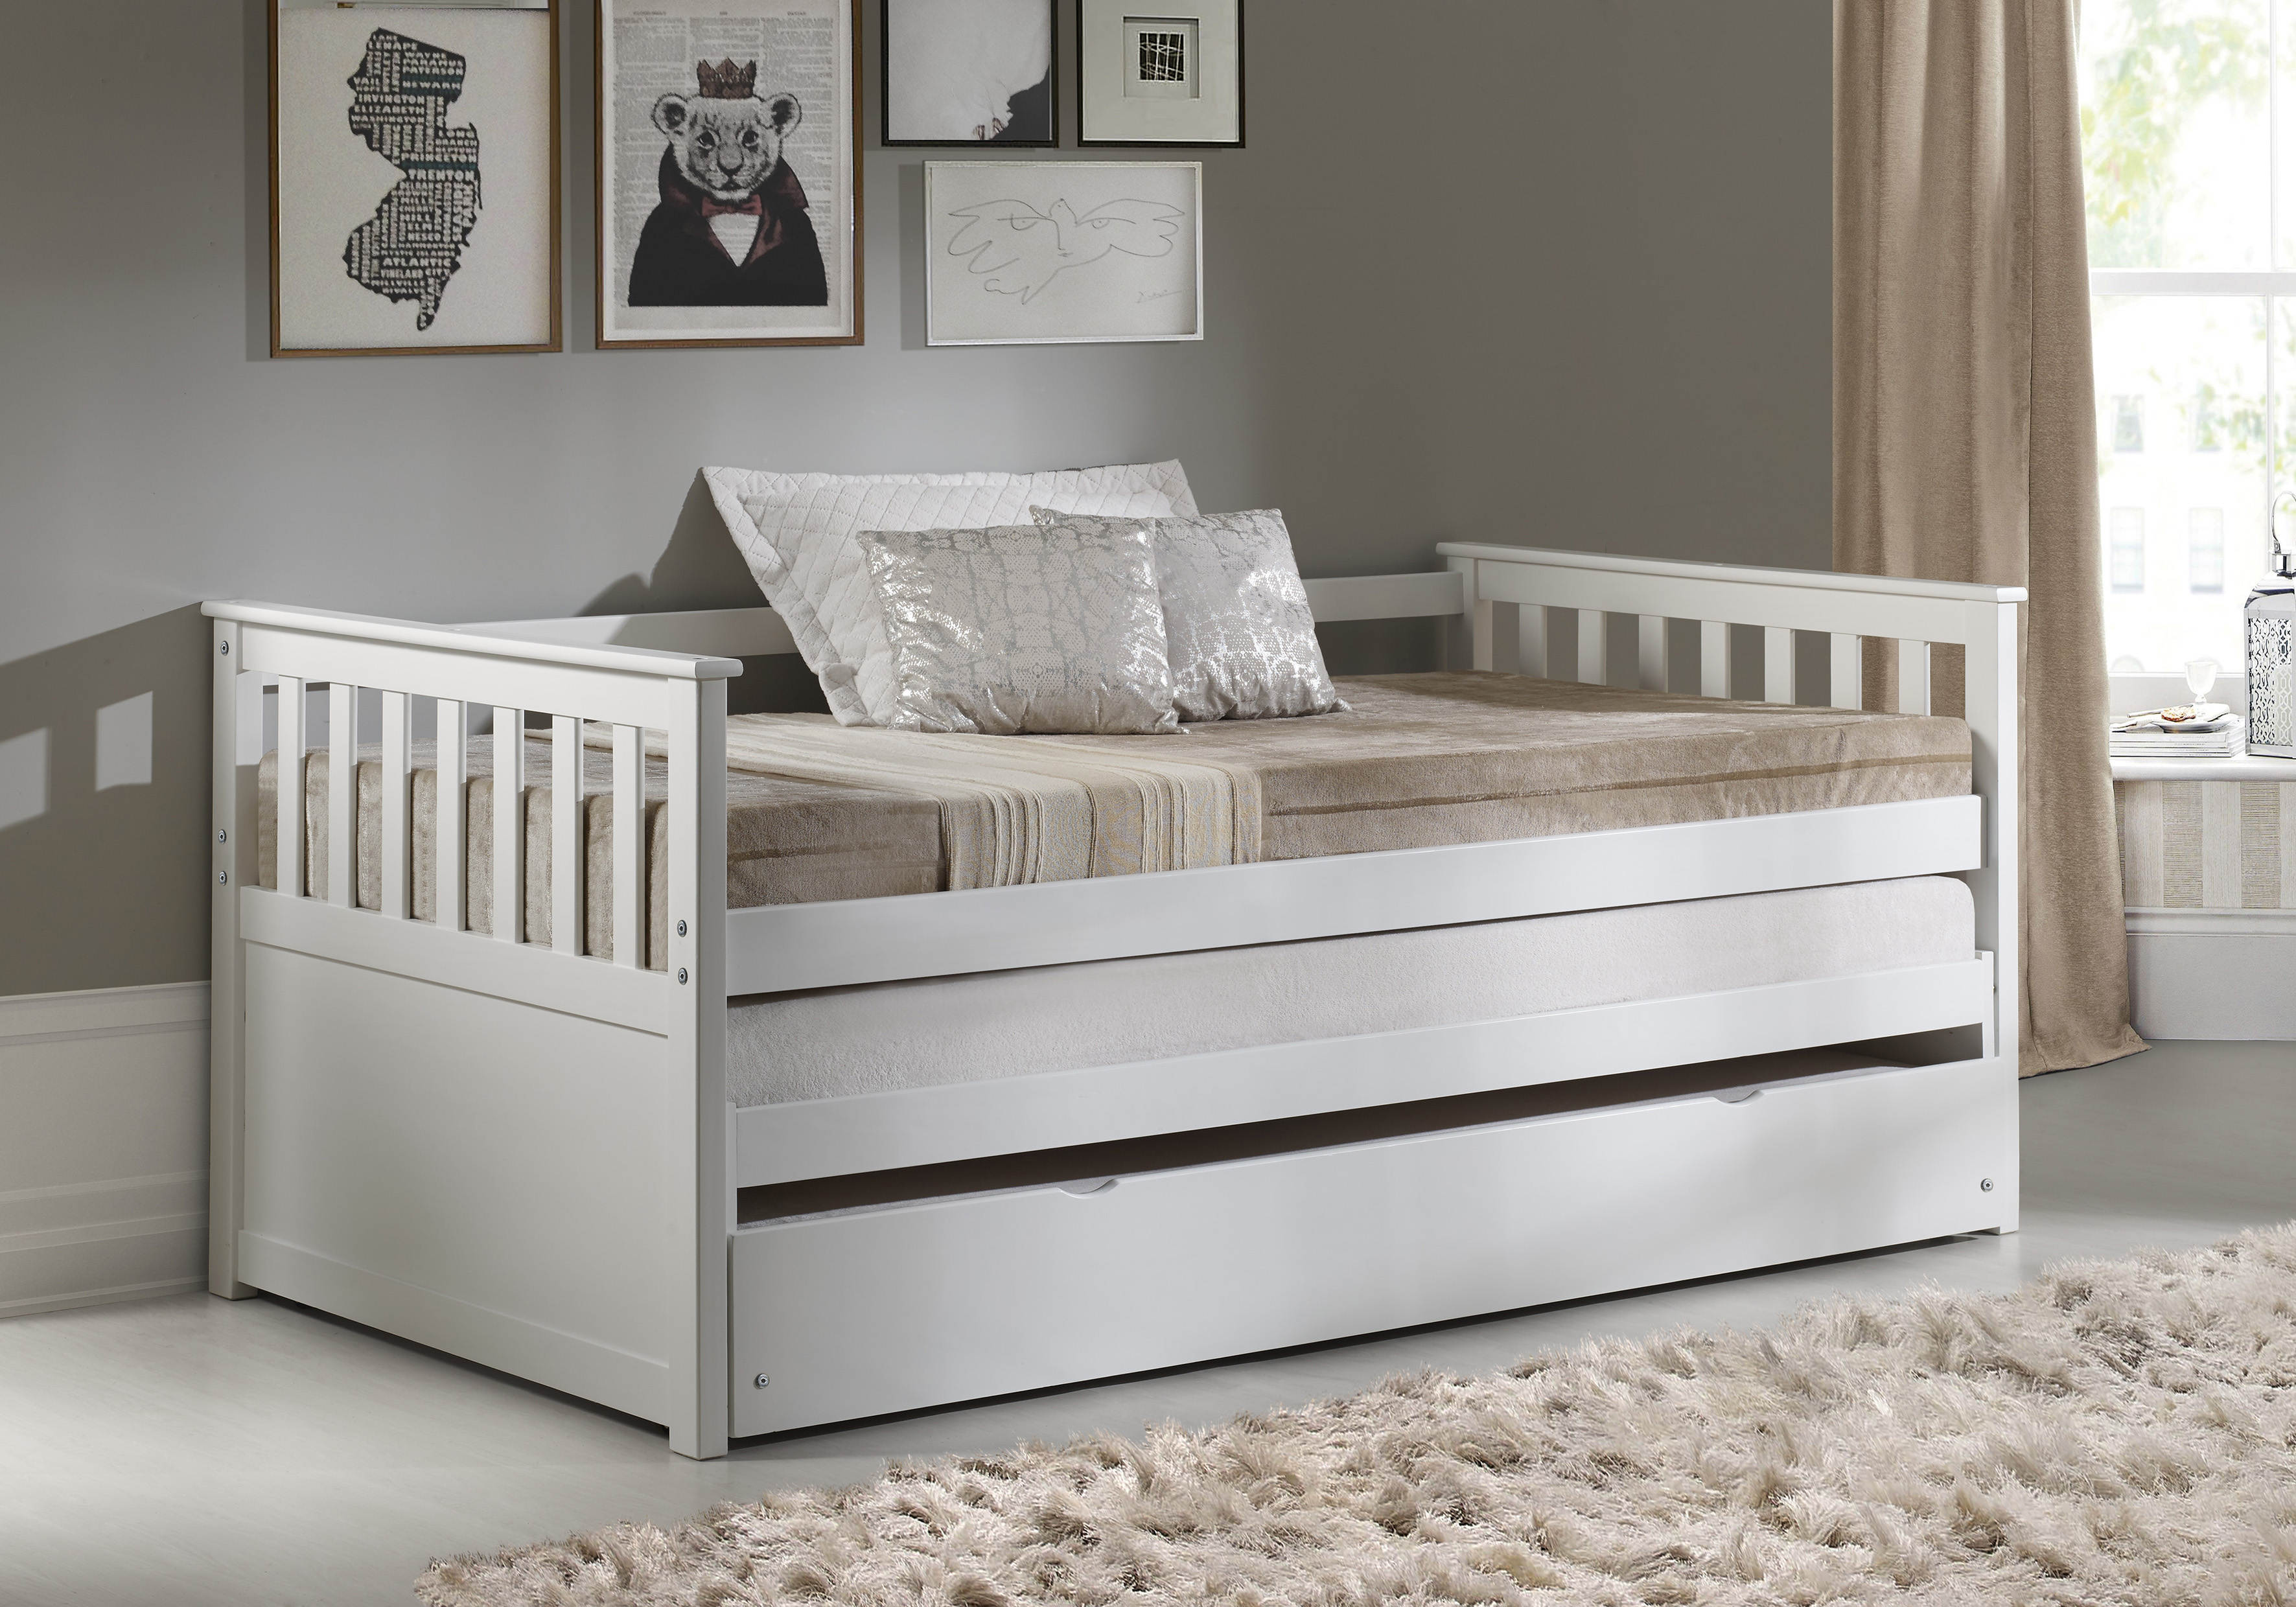 Acme Furniture Cominia White Trundle Day Bed The Classy Home